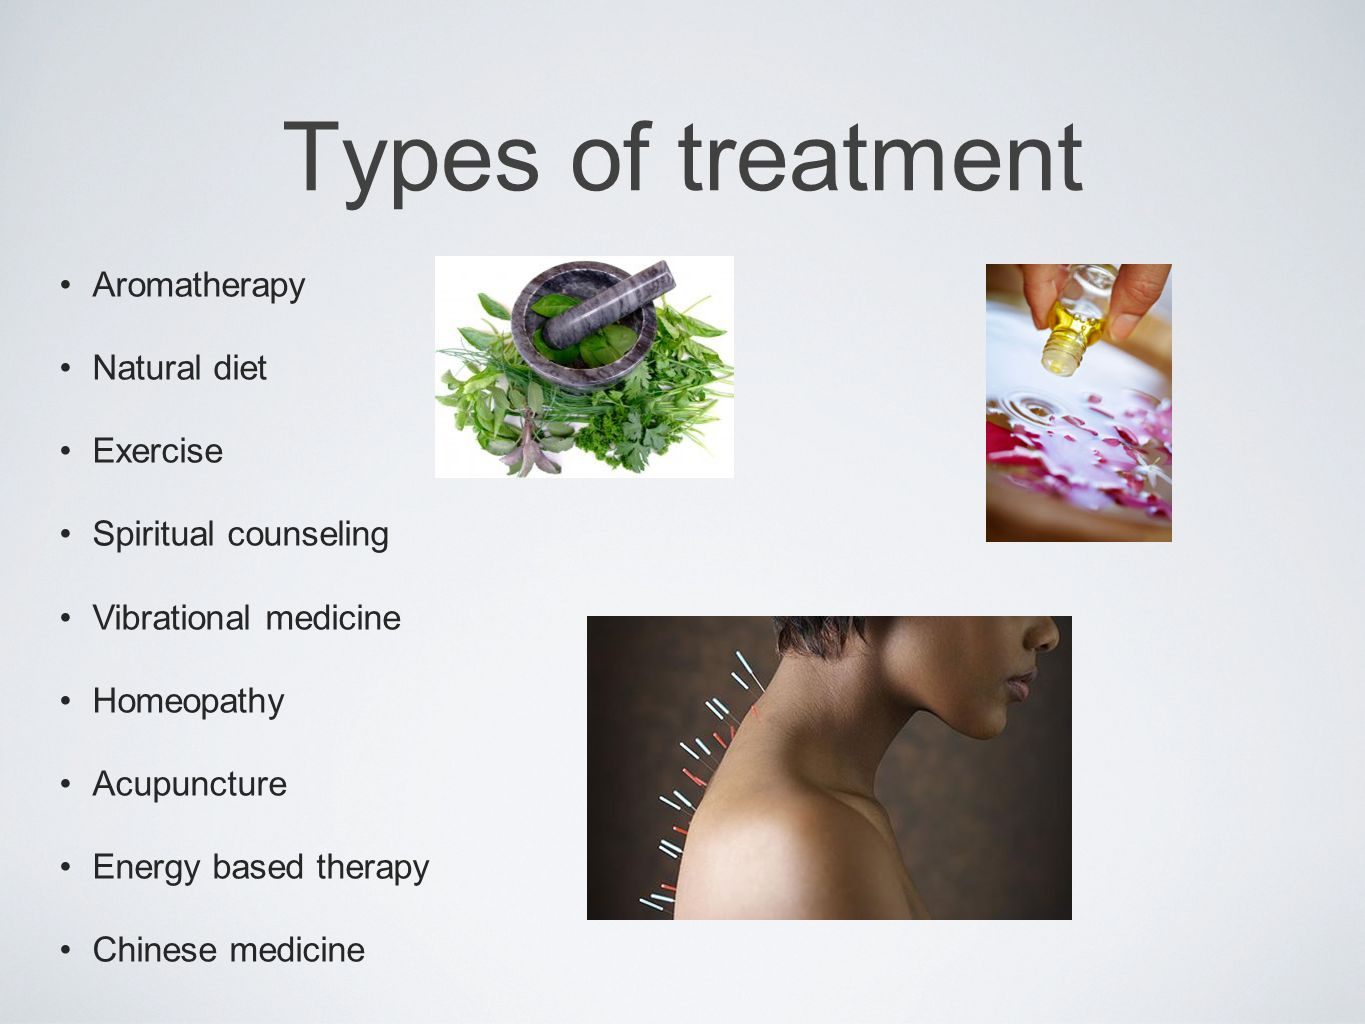 Types of treatment Aromatherapy Natural diet Exercise Spiritual counseling Vibrational medicine Homeopathy Acupuncture Energy based therapy Chinese medicine